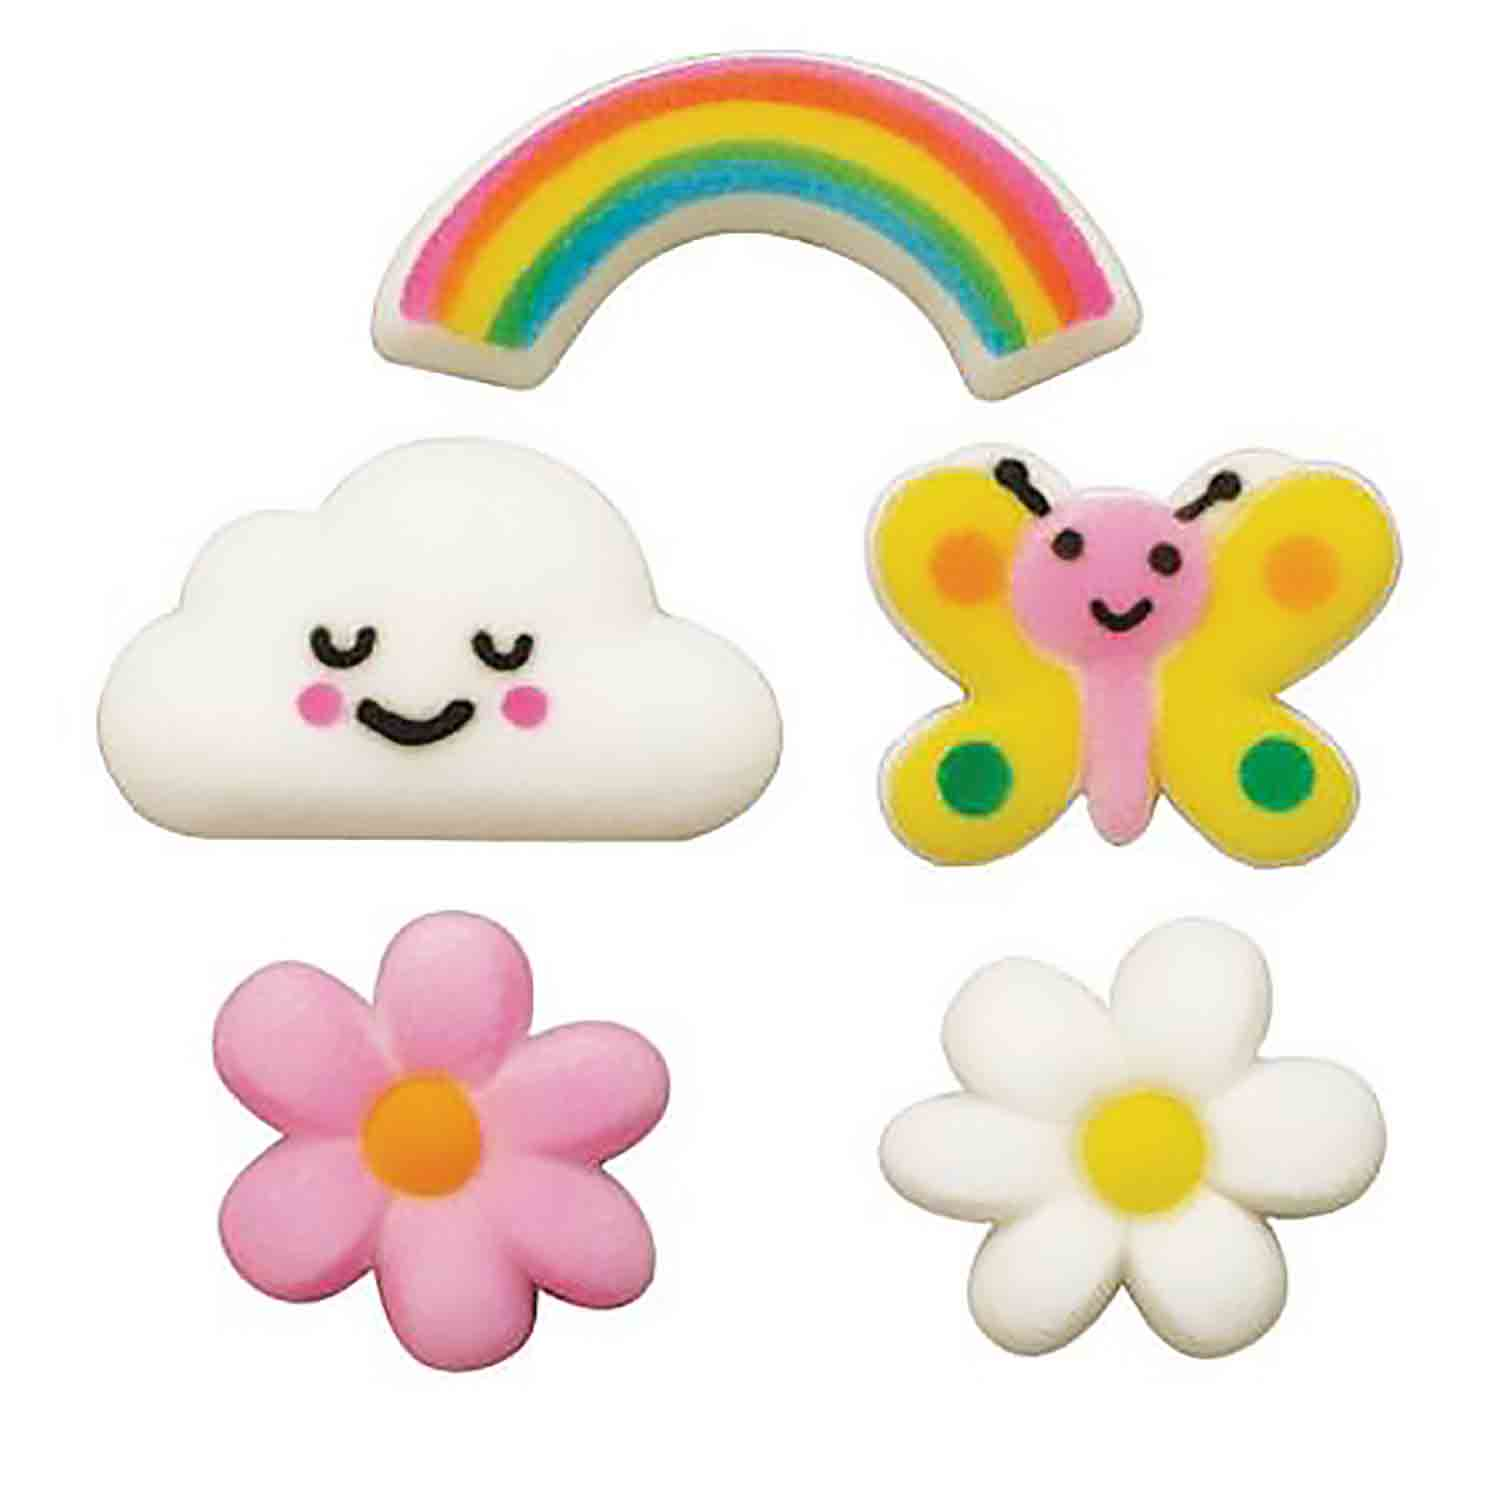 Dec-Ons® Molded Sugar - Spring Showers Assortment